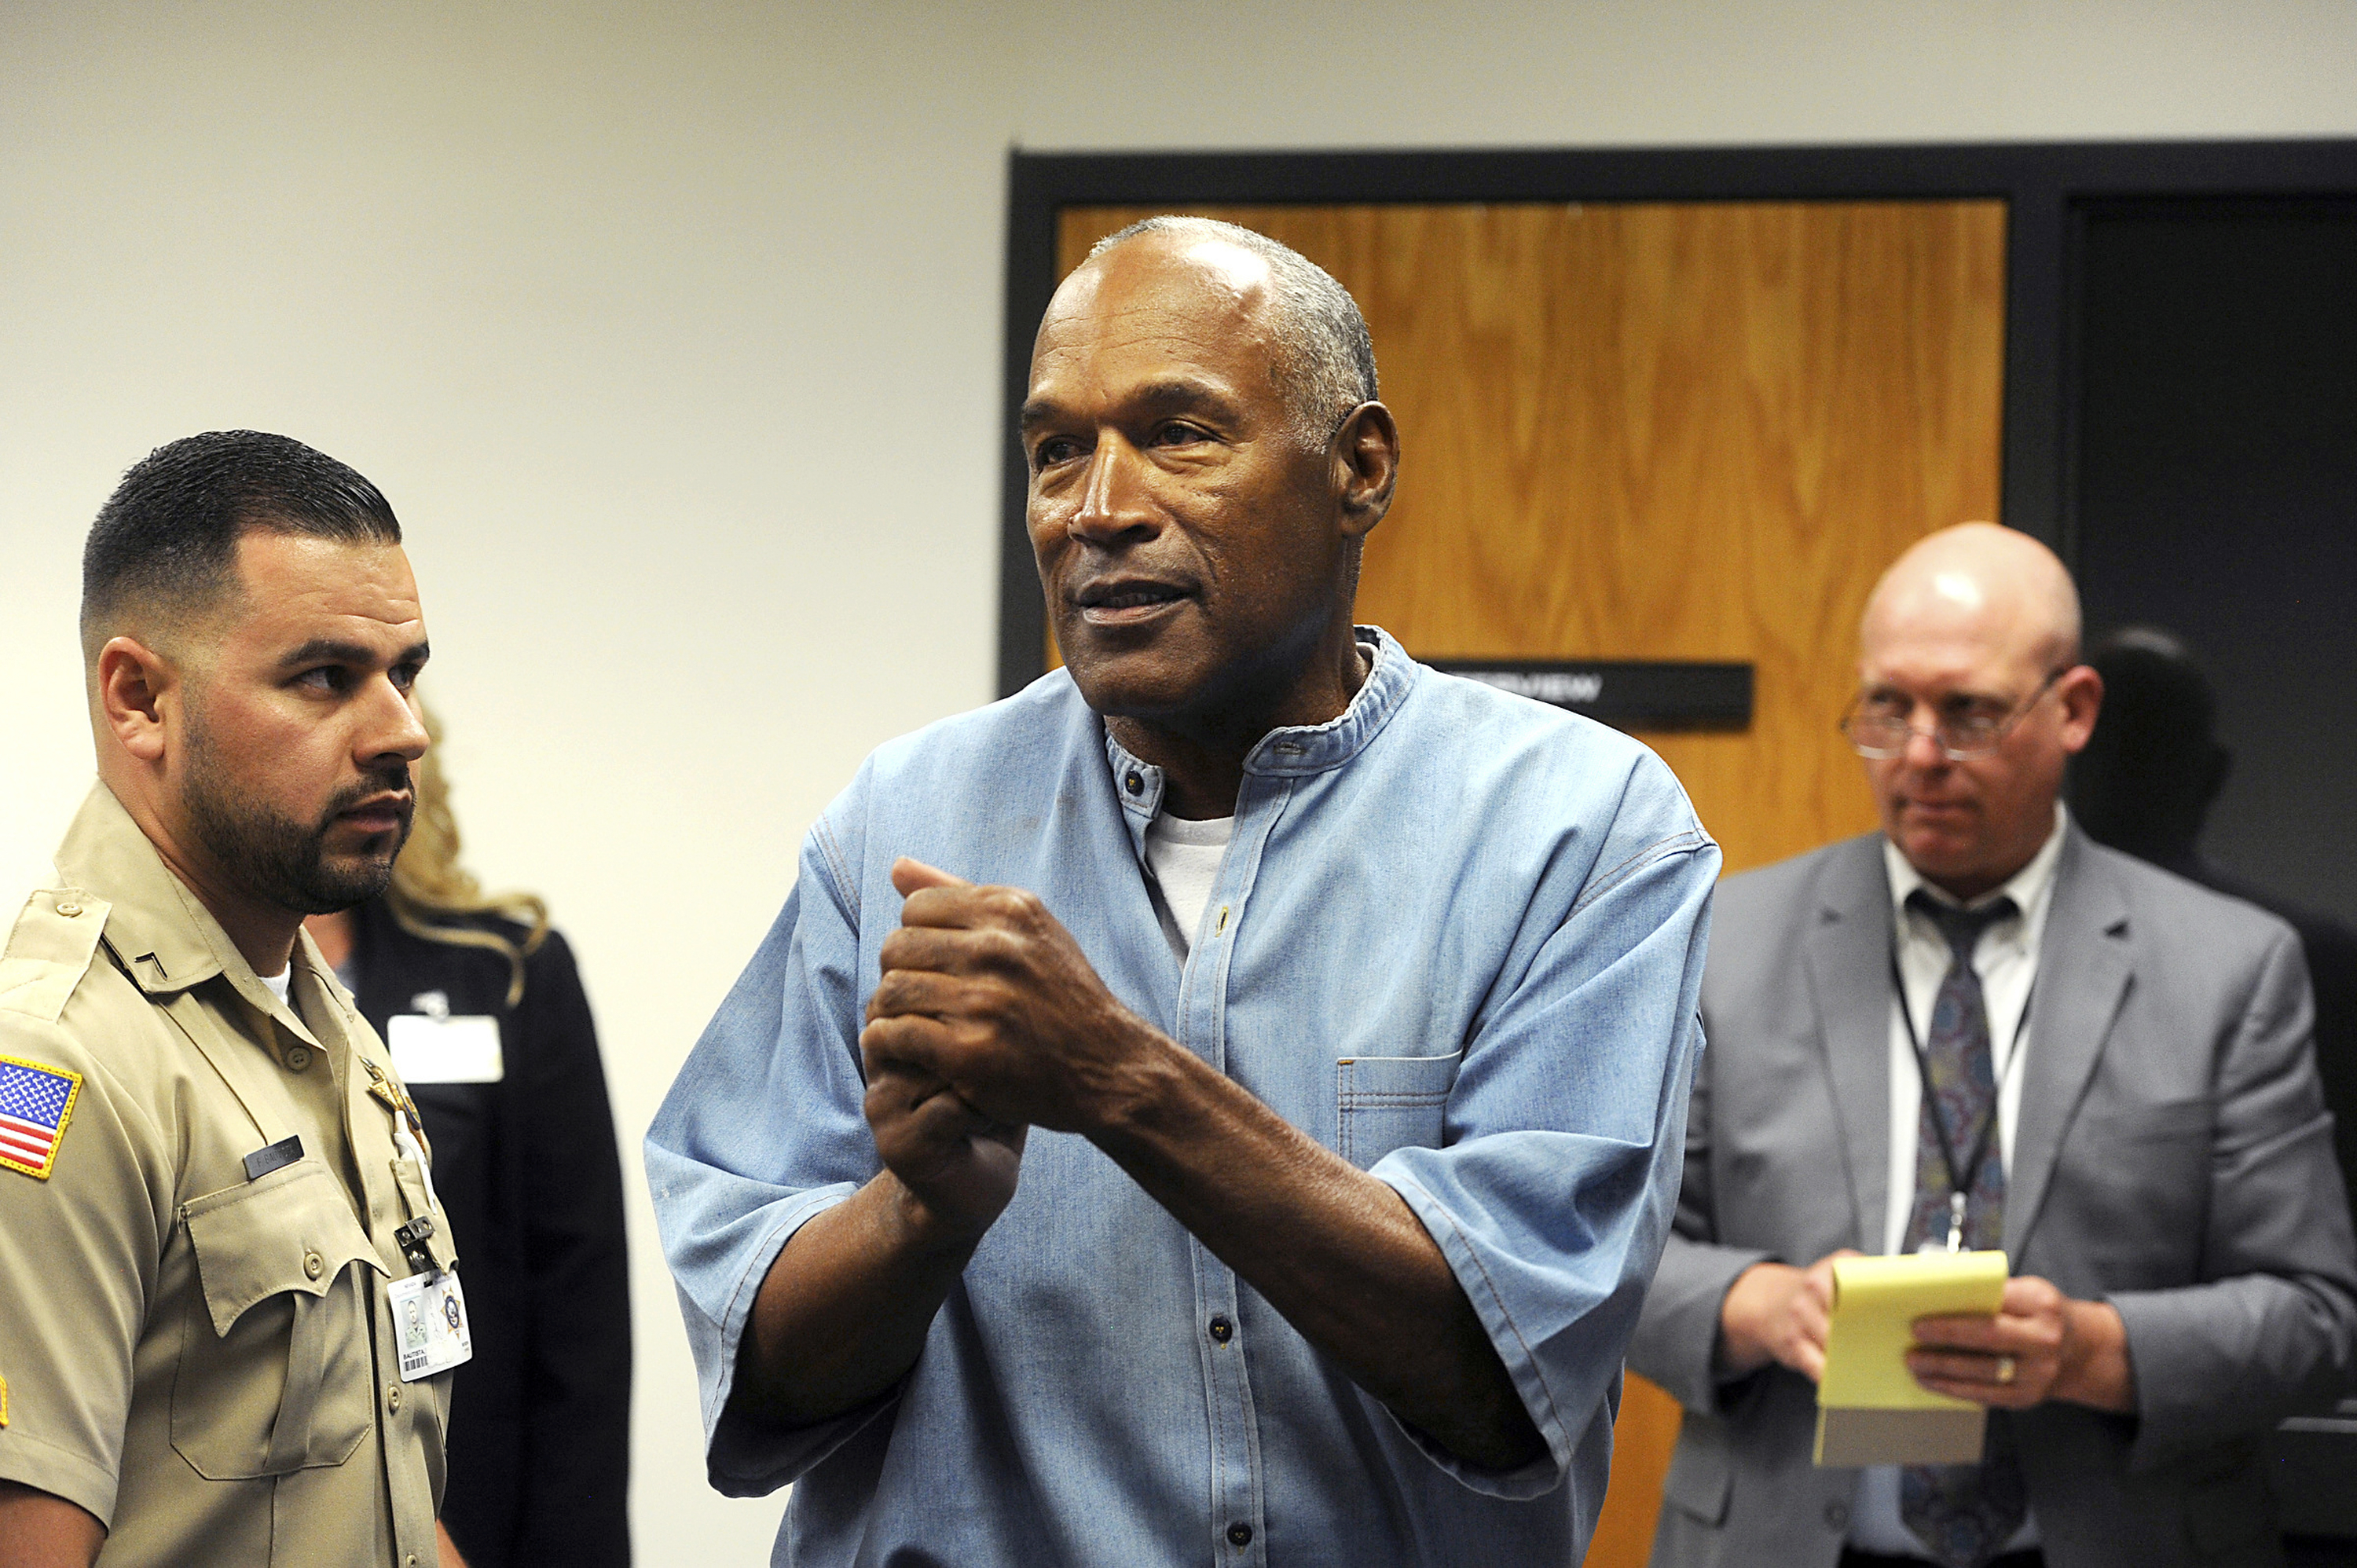 FILE - In this July 20, 2017 file photo, former NFL football star O.J. Simpson reacts after learning he was granted parole during a hearing at the Lovelock Correctional Center in Lovelock, Nev. Simpson was granted parole after more than eight years in prison for a Las Vegas hotel heist. A Nevada prison official said early Sunday, Oct. 1, 2017, O.J. Simpson, the former football legend and Hollywood star, has been released from a Nevada prison in Lovelock after serving nine years for armed robbery.  (Jason Bean/The Reno Gazette-Journal via AP, Pool, File)